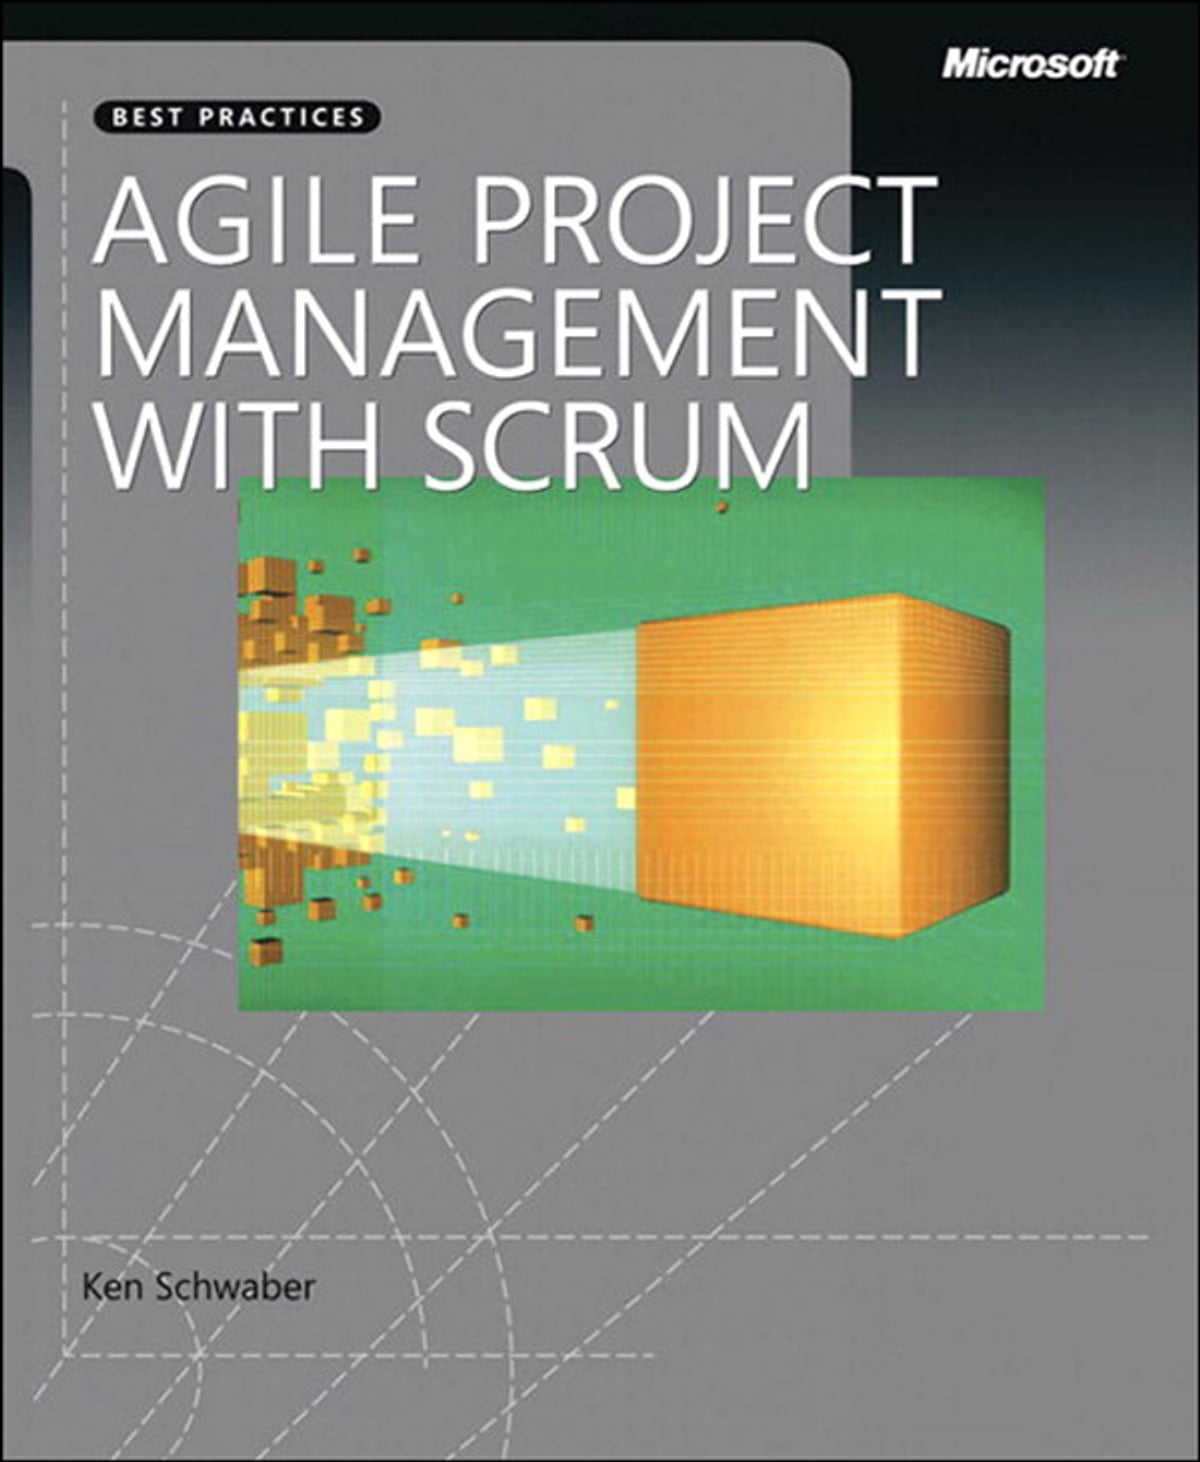 Image result for Agile Project Management with Scrum""